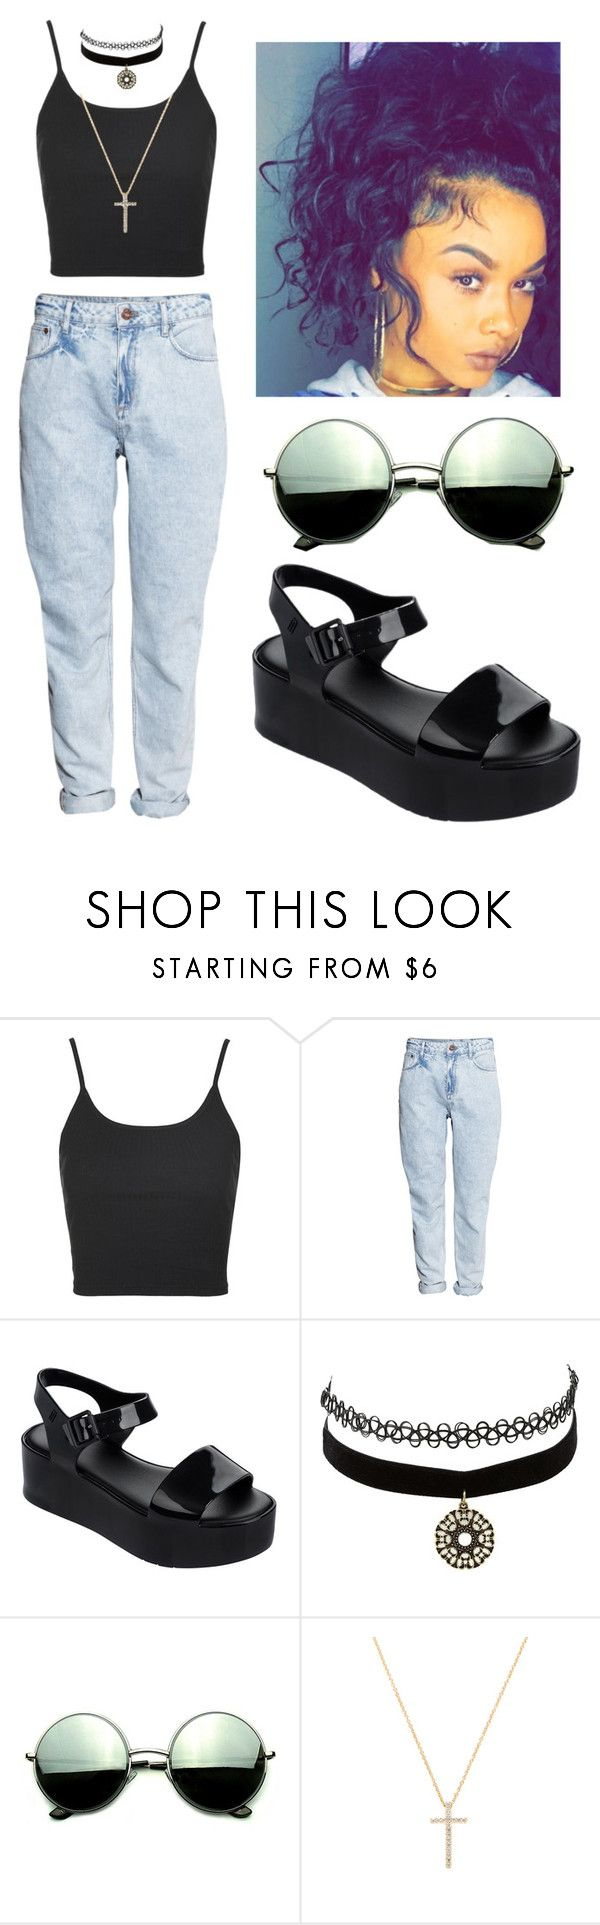 """Rock The Boat Aaliyah"" by beautyqueen-927 ❤ liked on Polyvore featuring Topshop, H&M, Melissa, Charlotte Russe, Revo and Nephora"